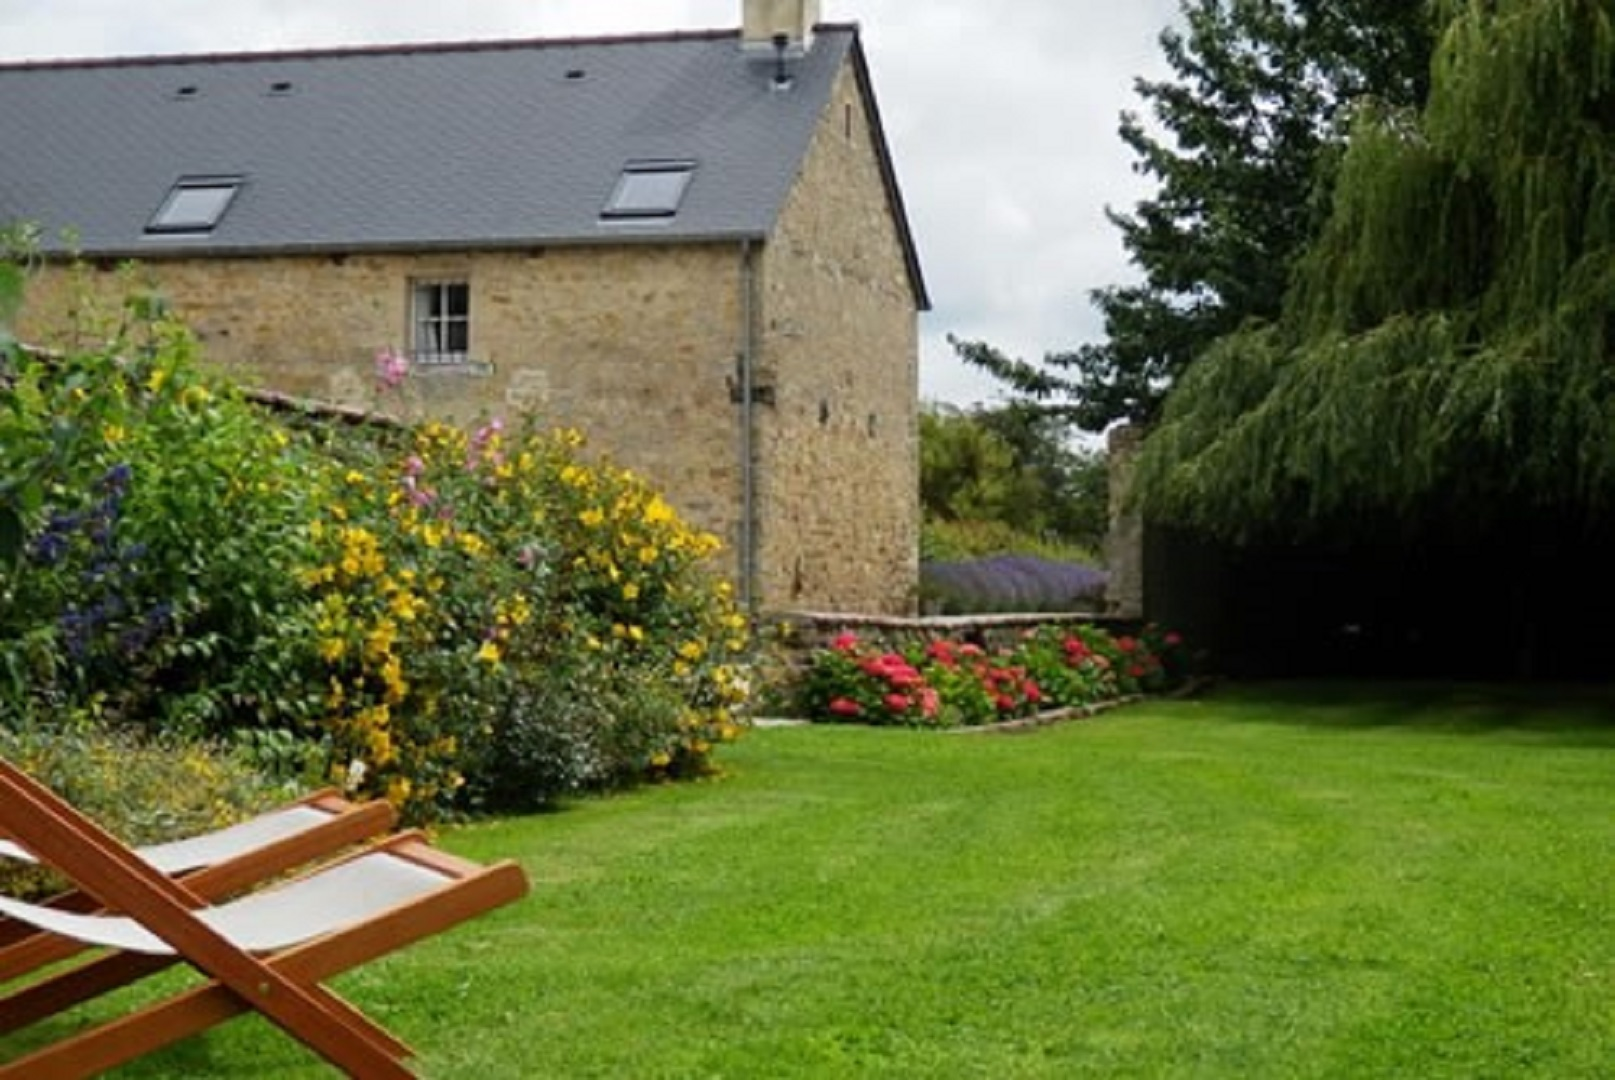 A bench in front of a house at LES CHAUFOURNIERS.